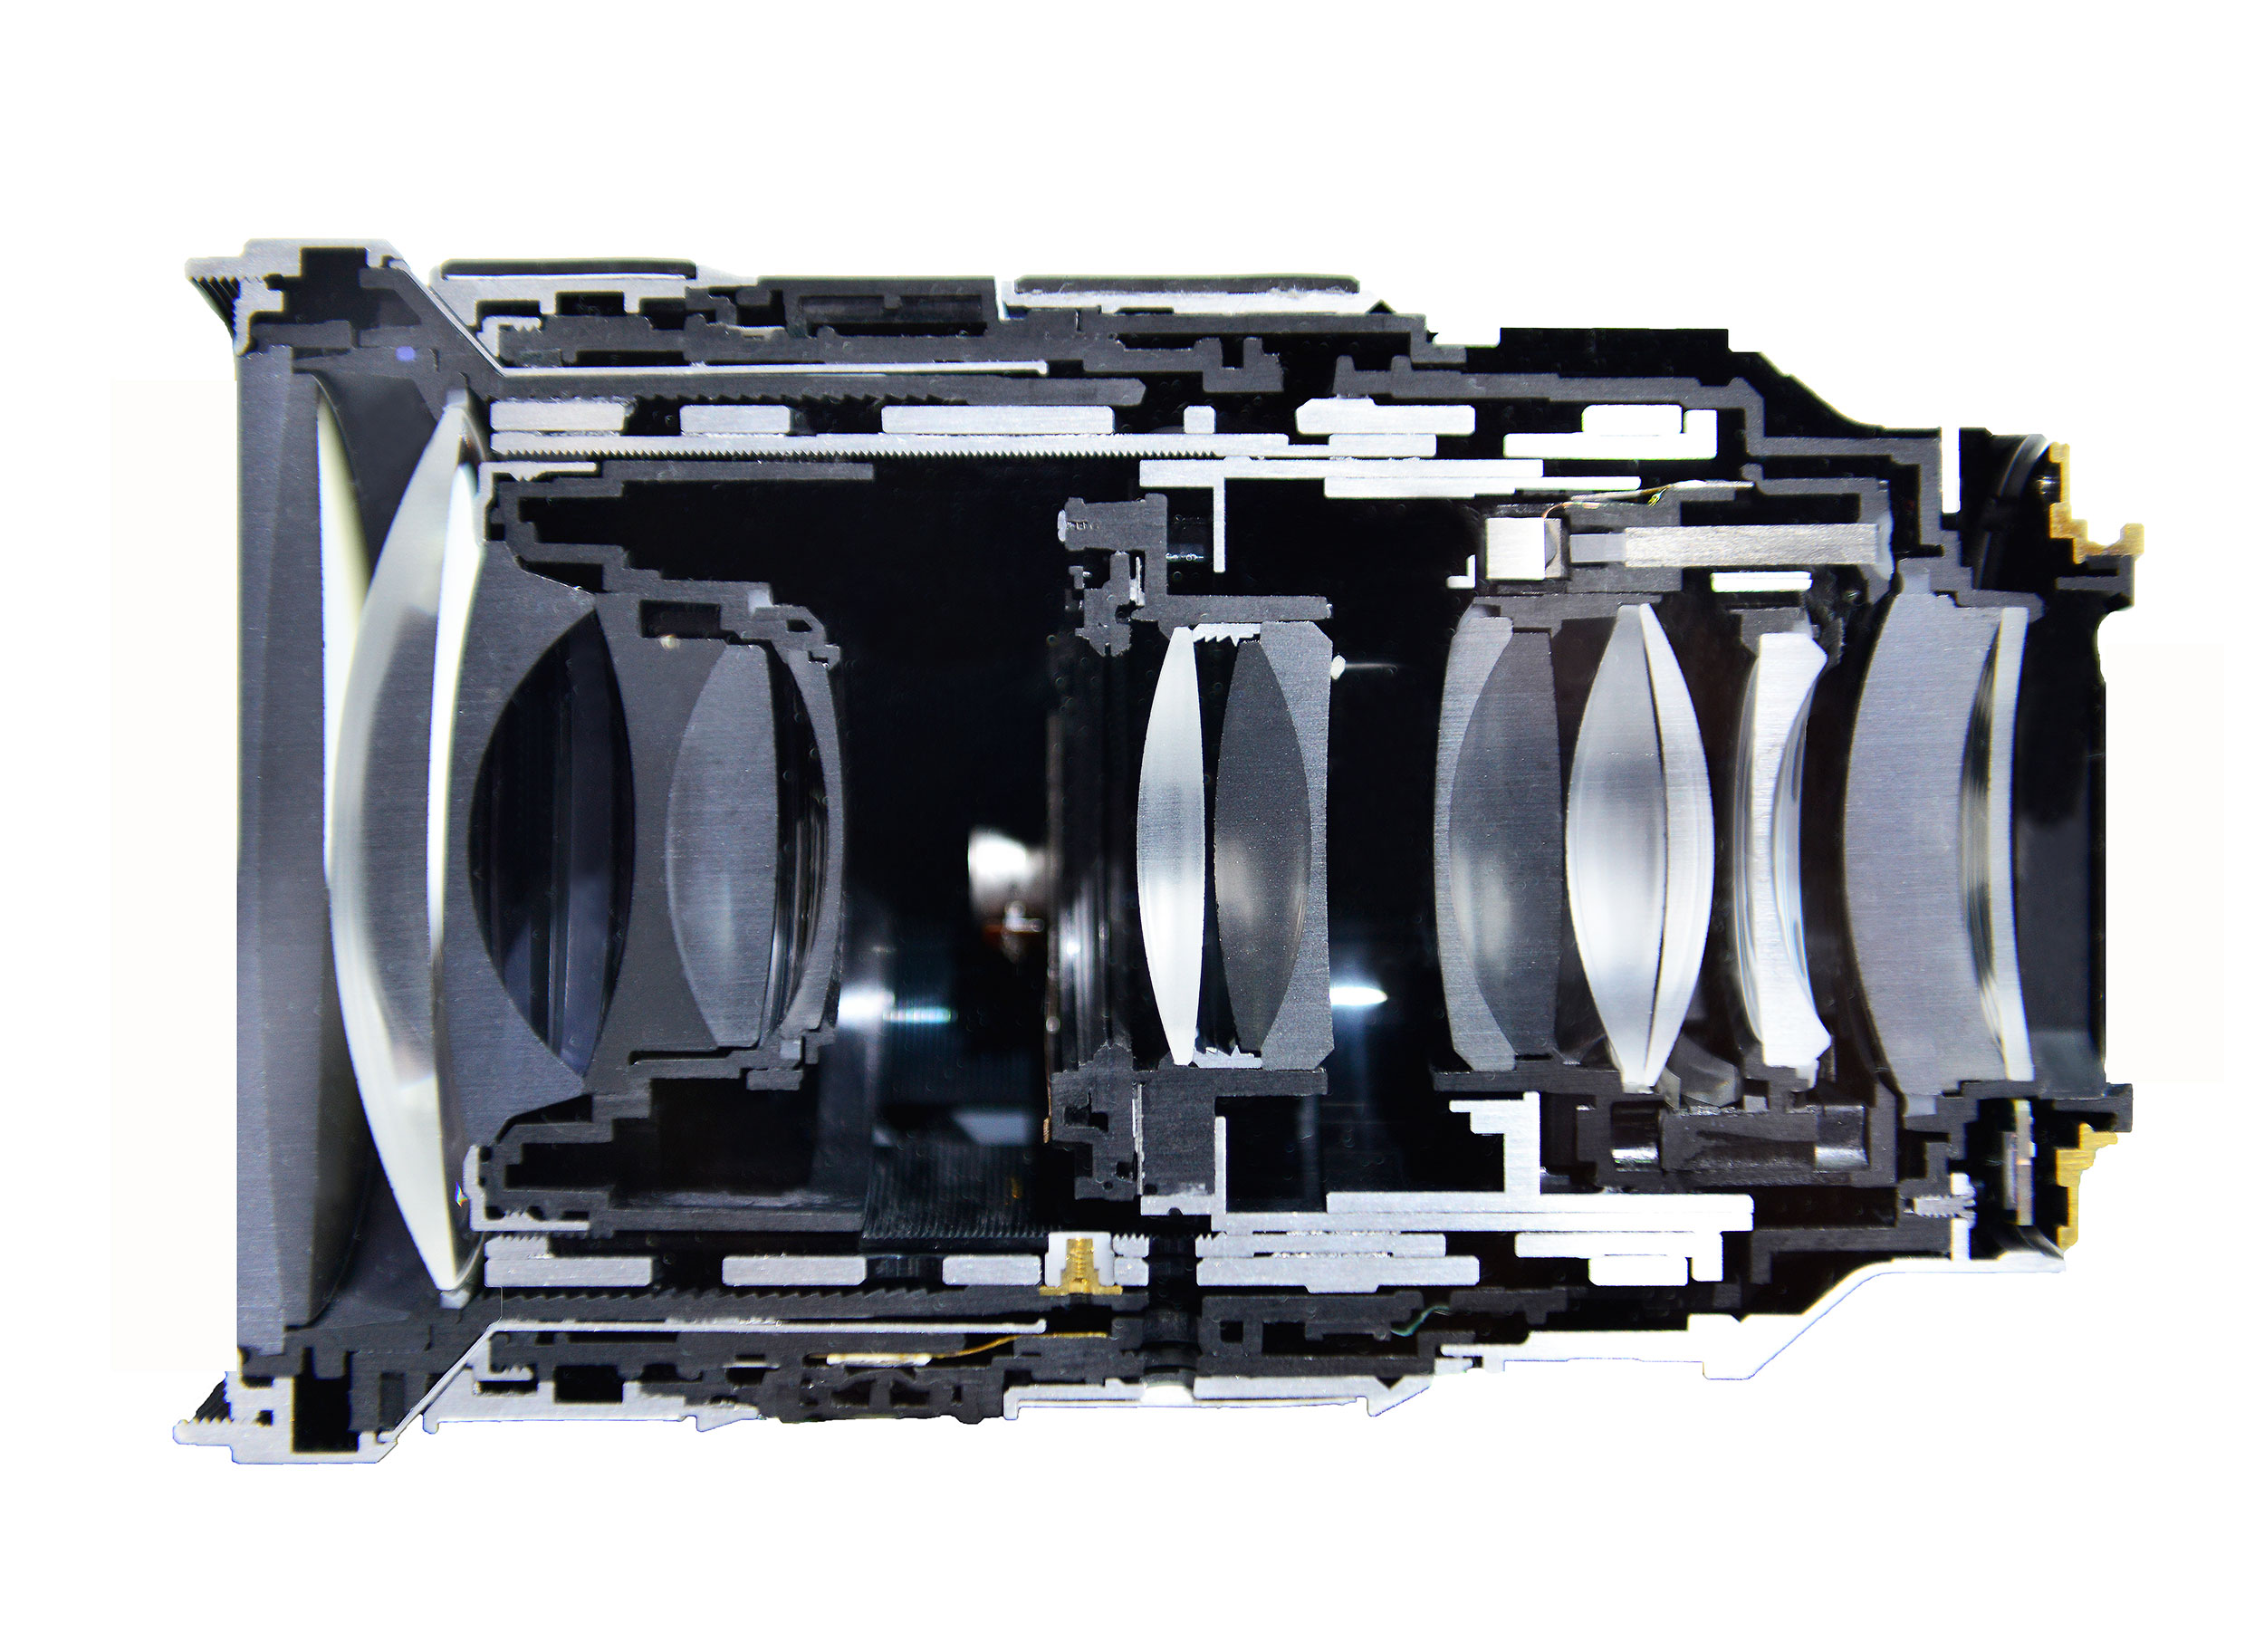 A cross section of a zoom lens showing internal optical elements.